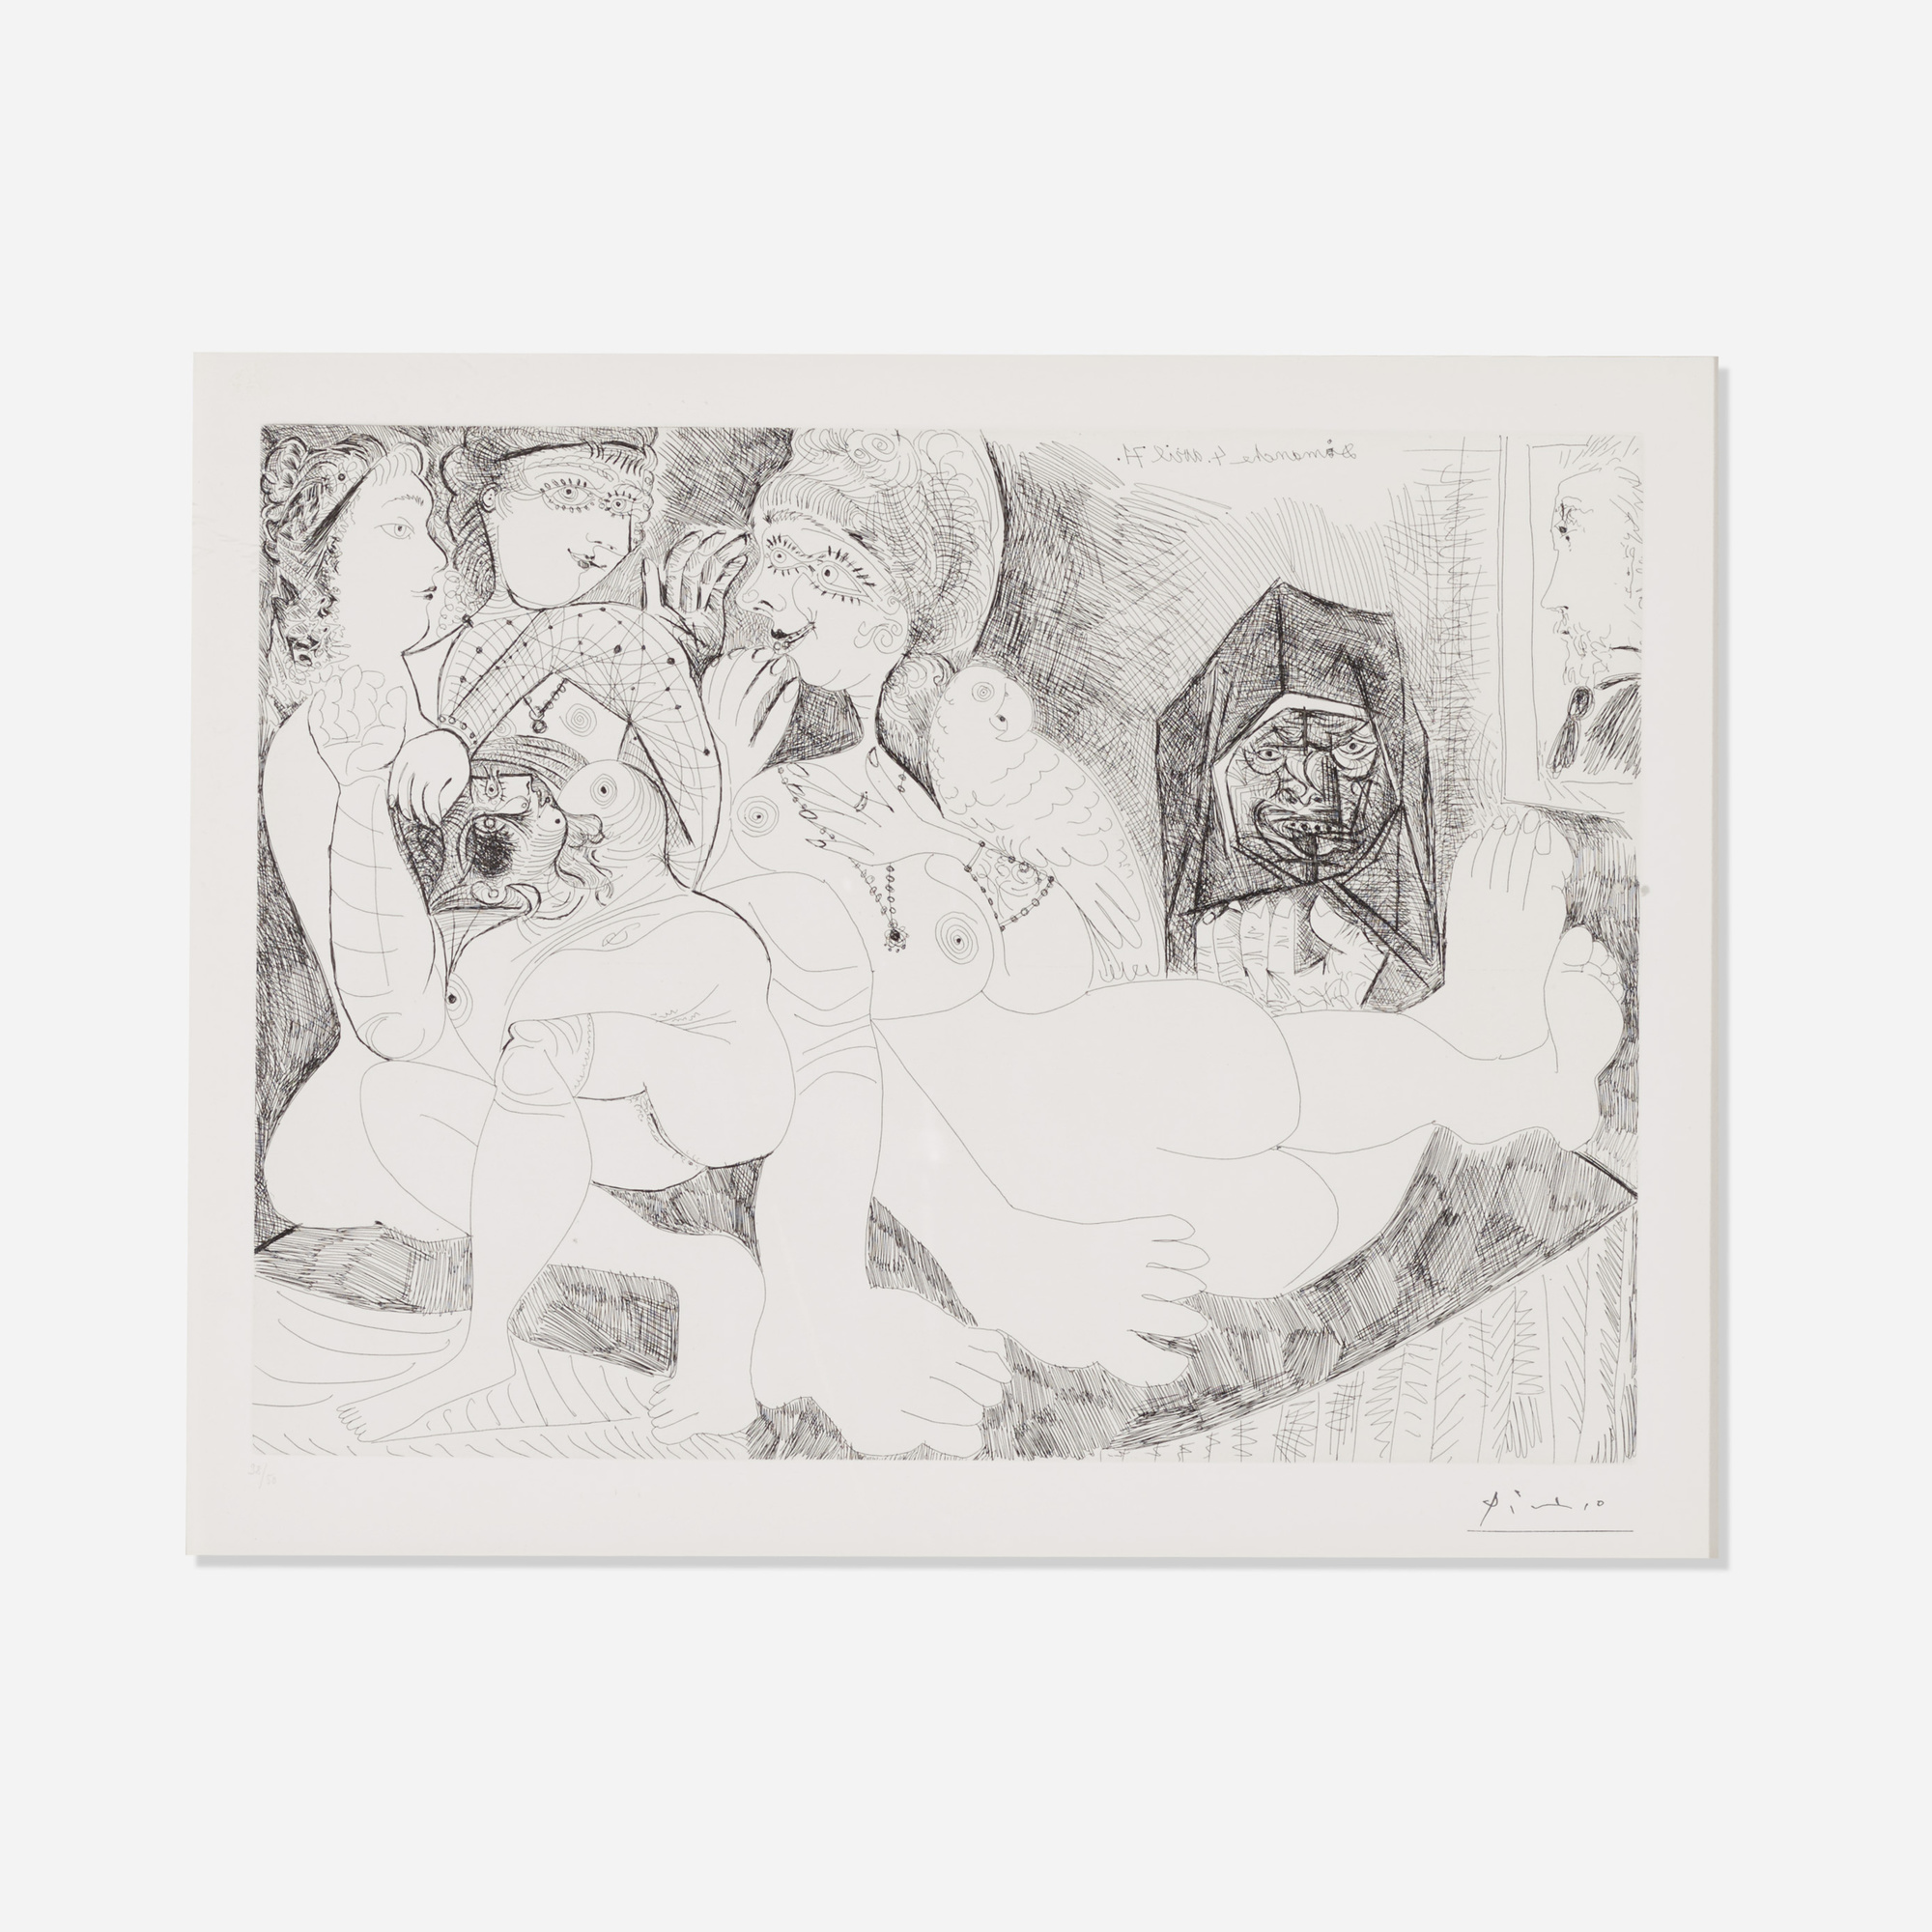 214: Pablo Picasso / Maison close. Bavardages, avec perroquet, Célestine, et le portait de Degas, (plate 109 from Series 156) (1 of 1)